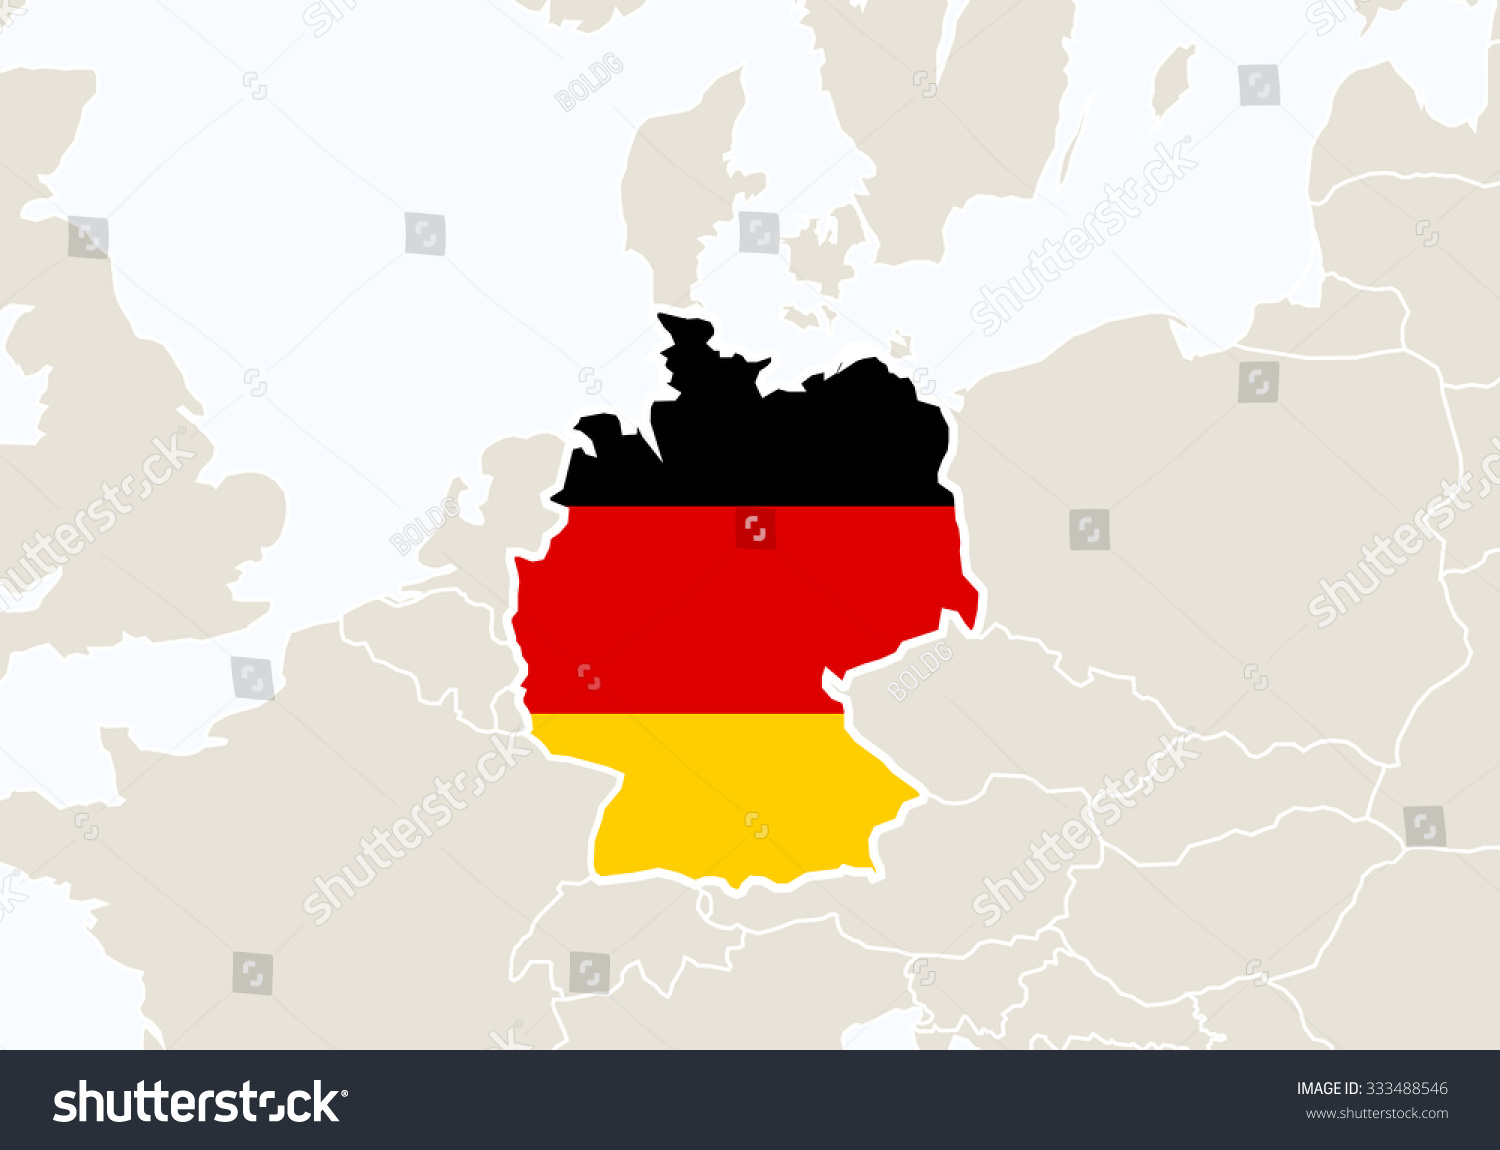 Europe Highlighted Germany Map Vector Illustration Vector – Germany Europe Map